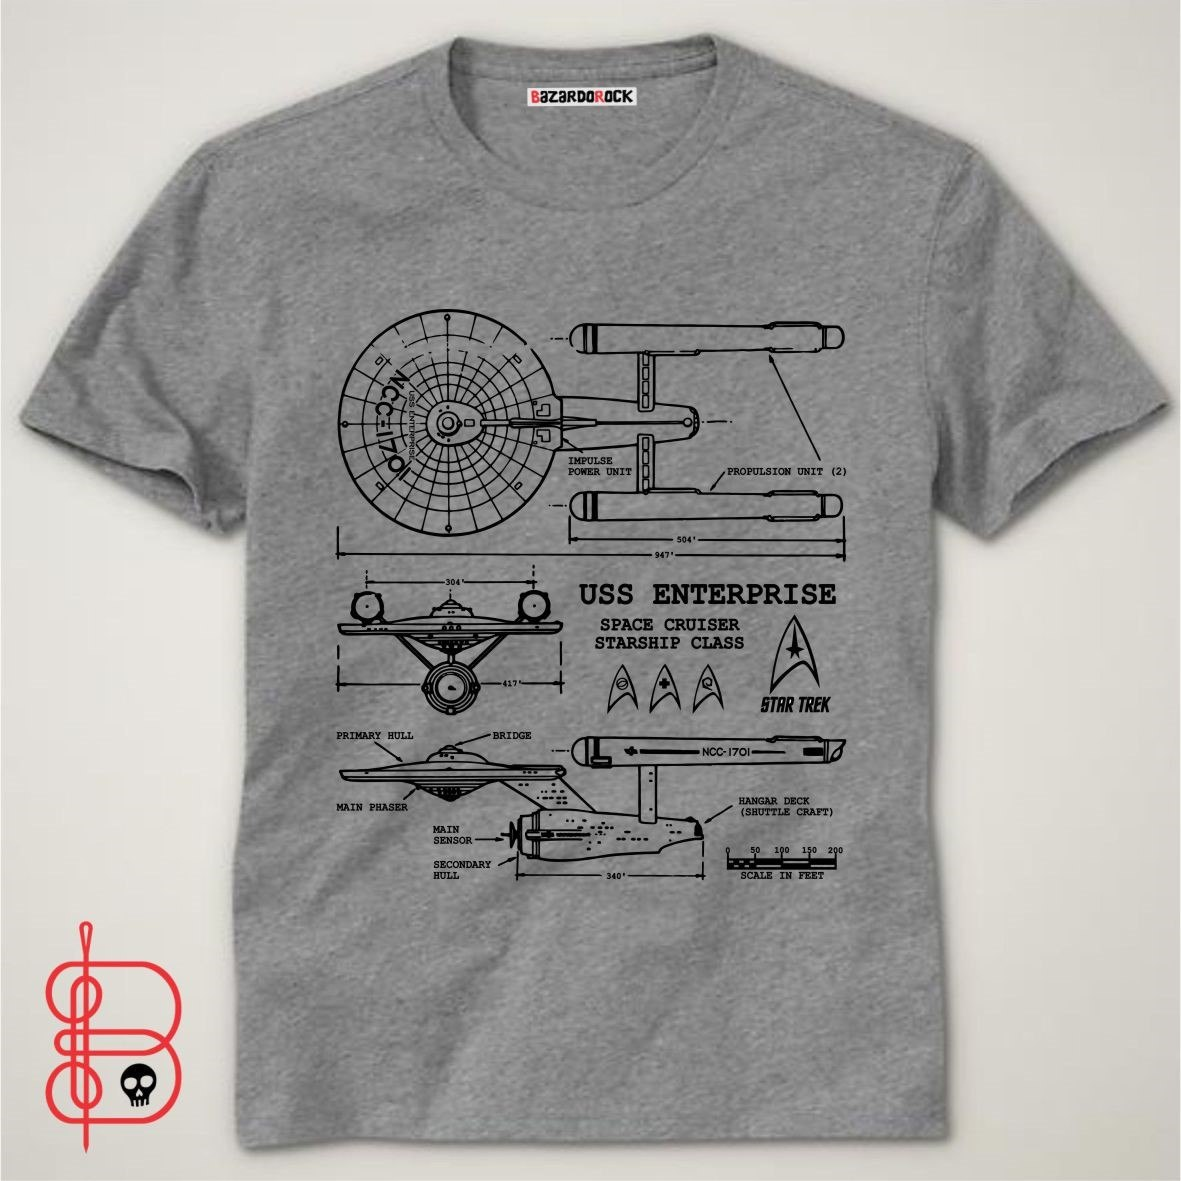 f5b8767fd790b camiseta star trek - enterprise - bazar do rock. Carregando zoom.